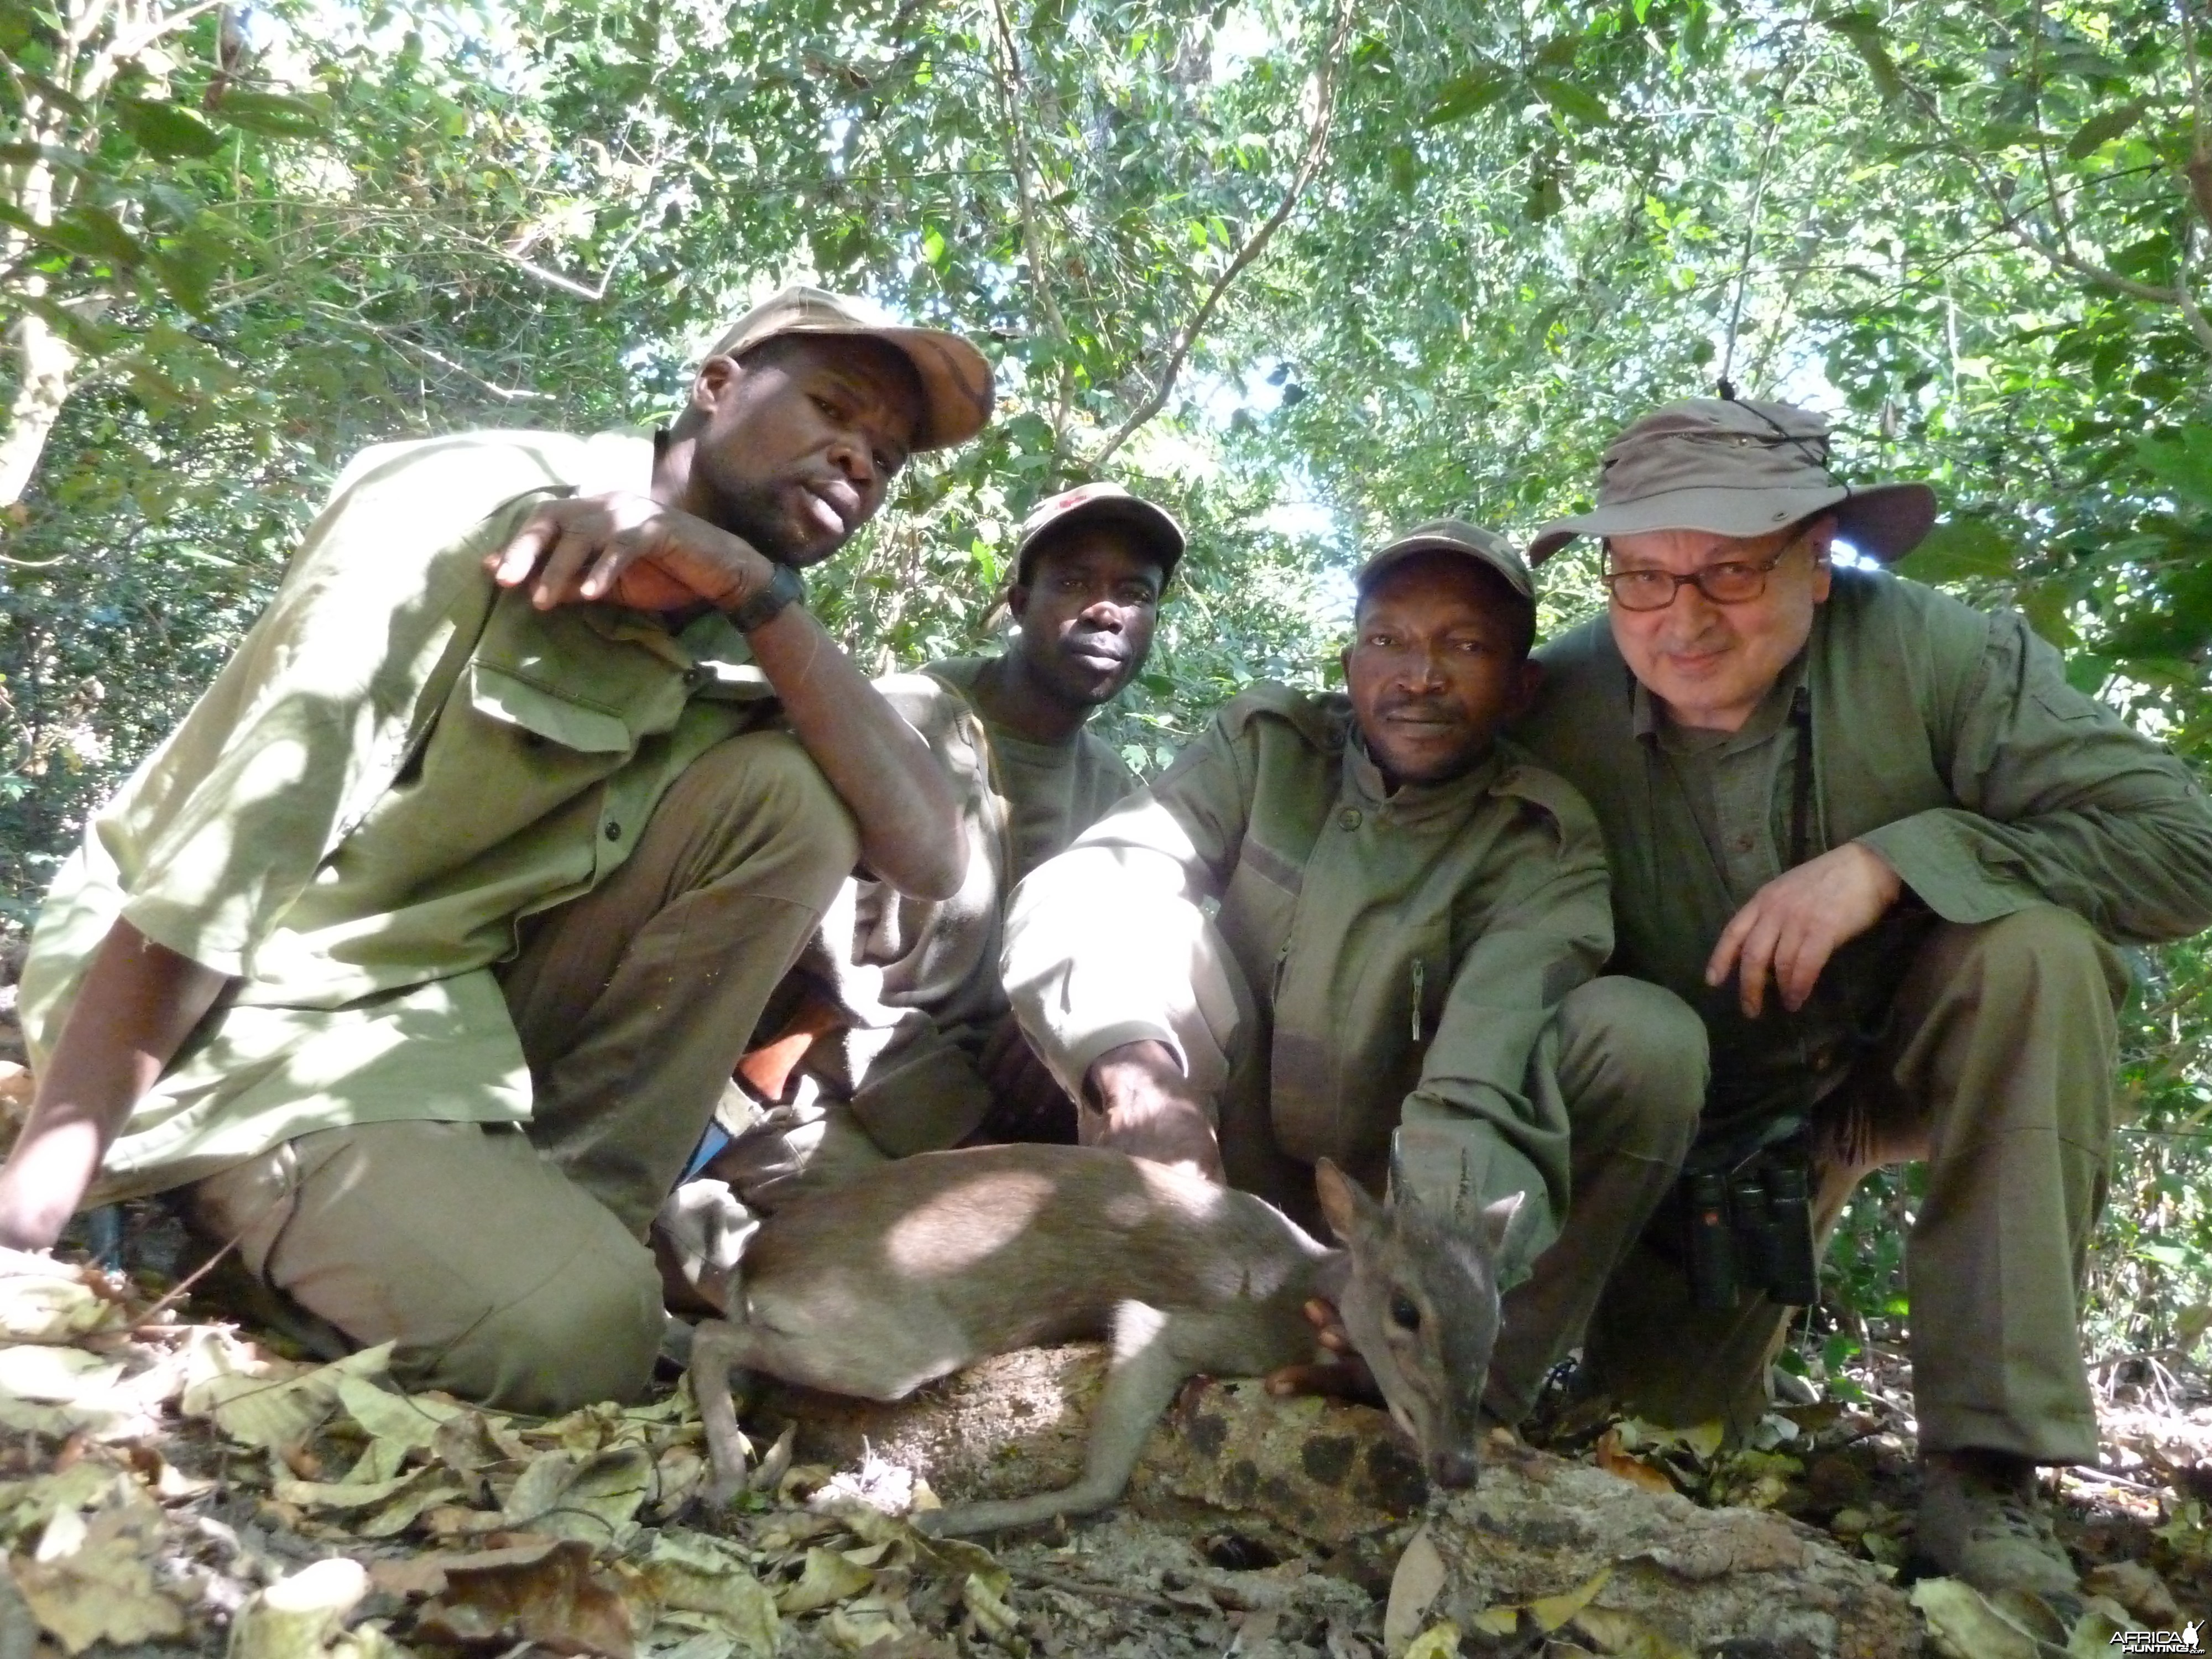 Blue Duiker hunted in Central Africa with Club Faune